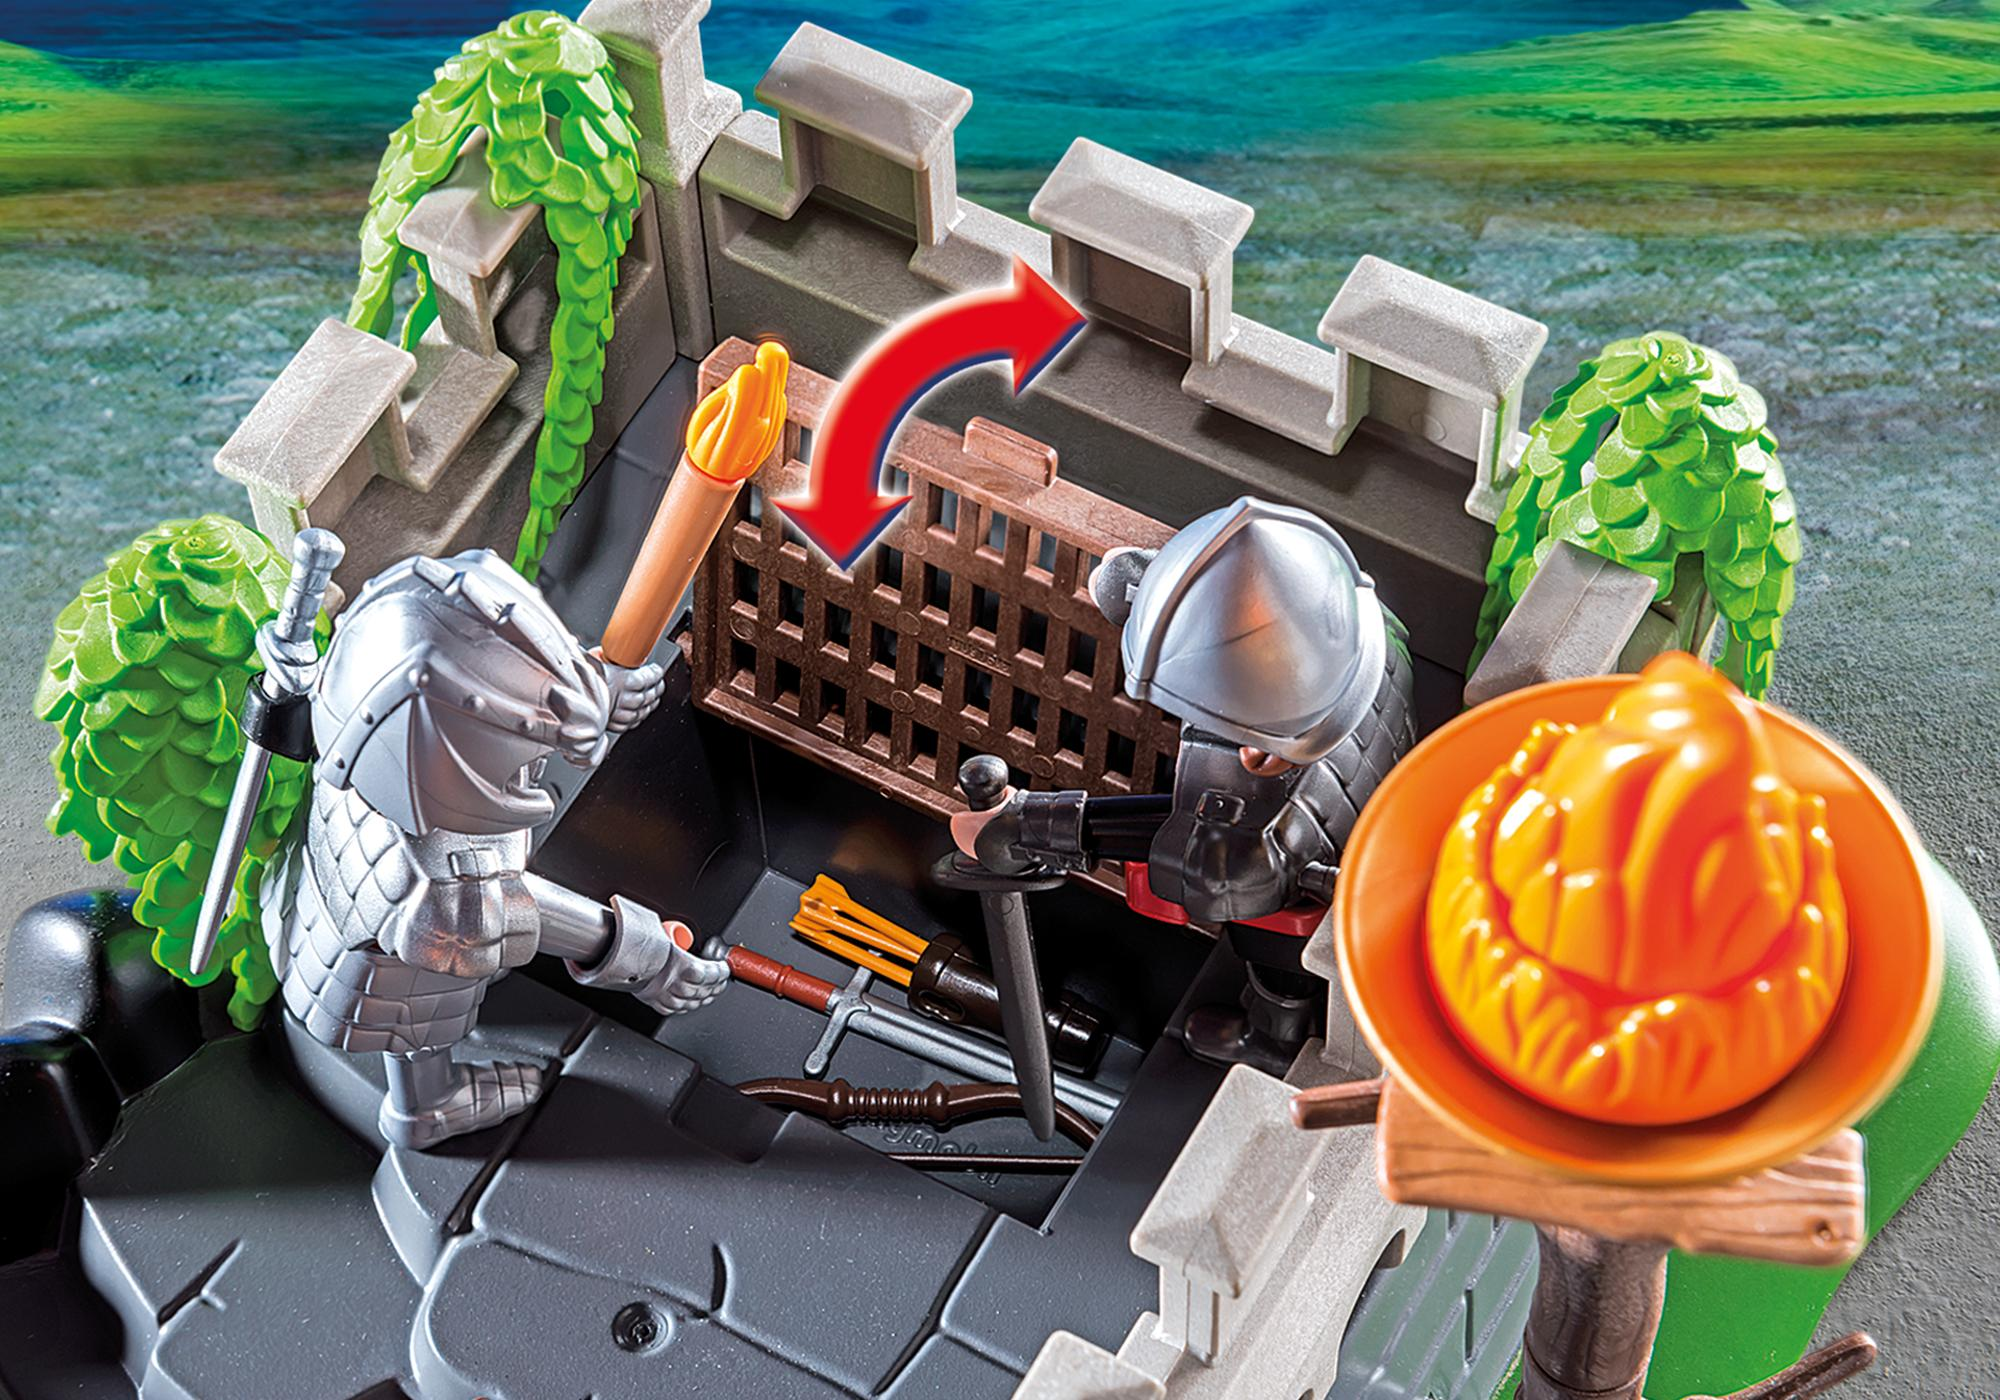 http://media.playmobil.com/i/playmobil/6627_product_extra1/Bastion des chevaliers du Dragon Ailé